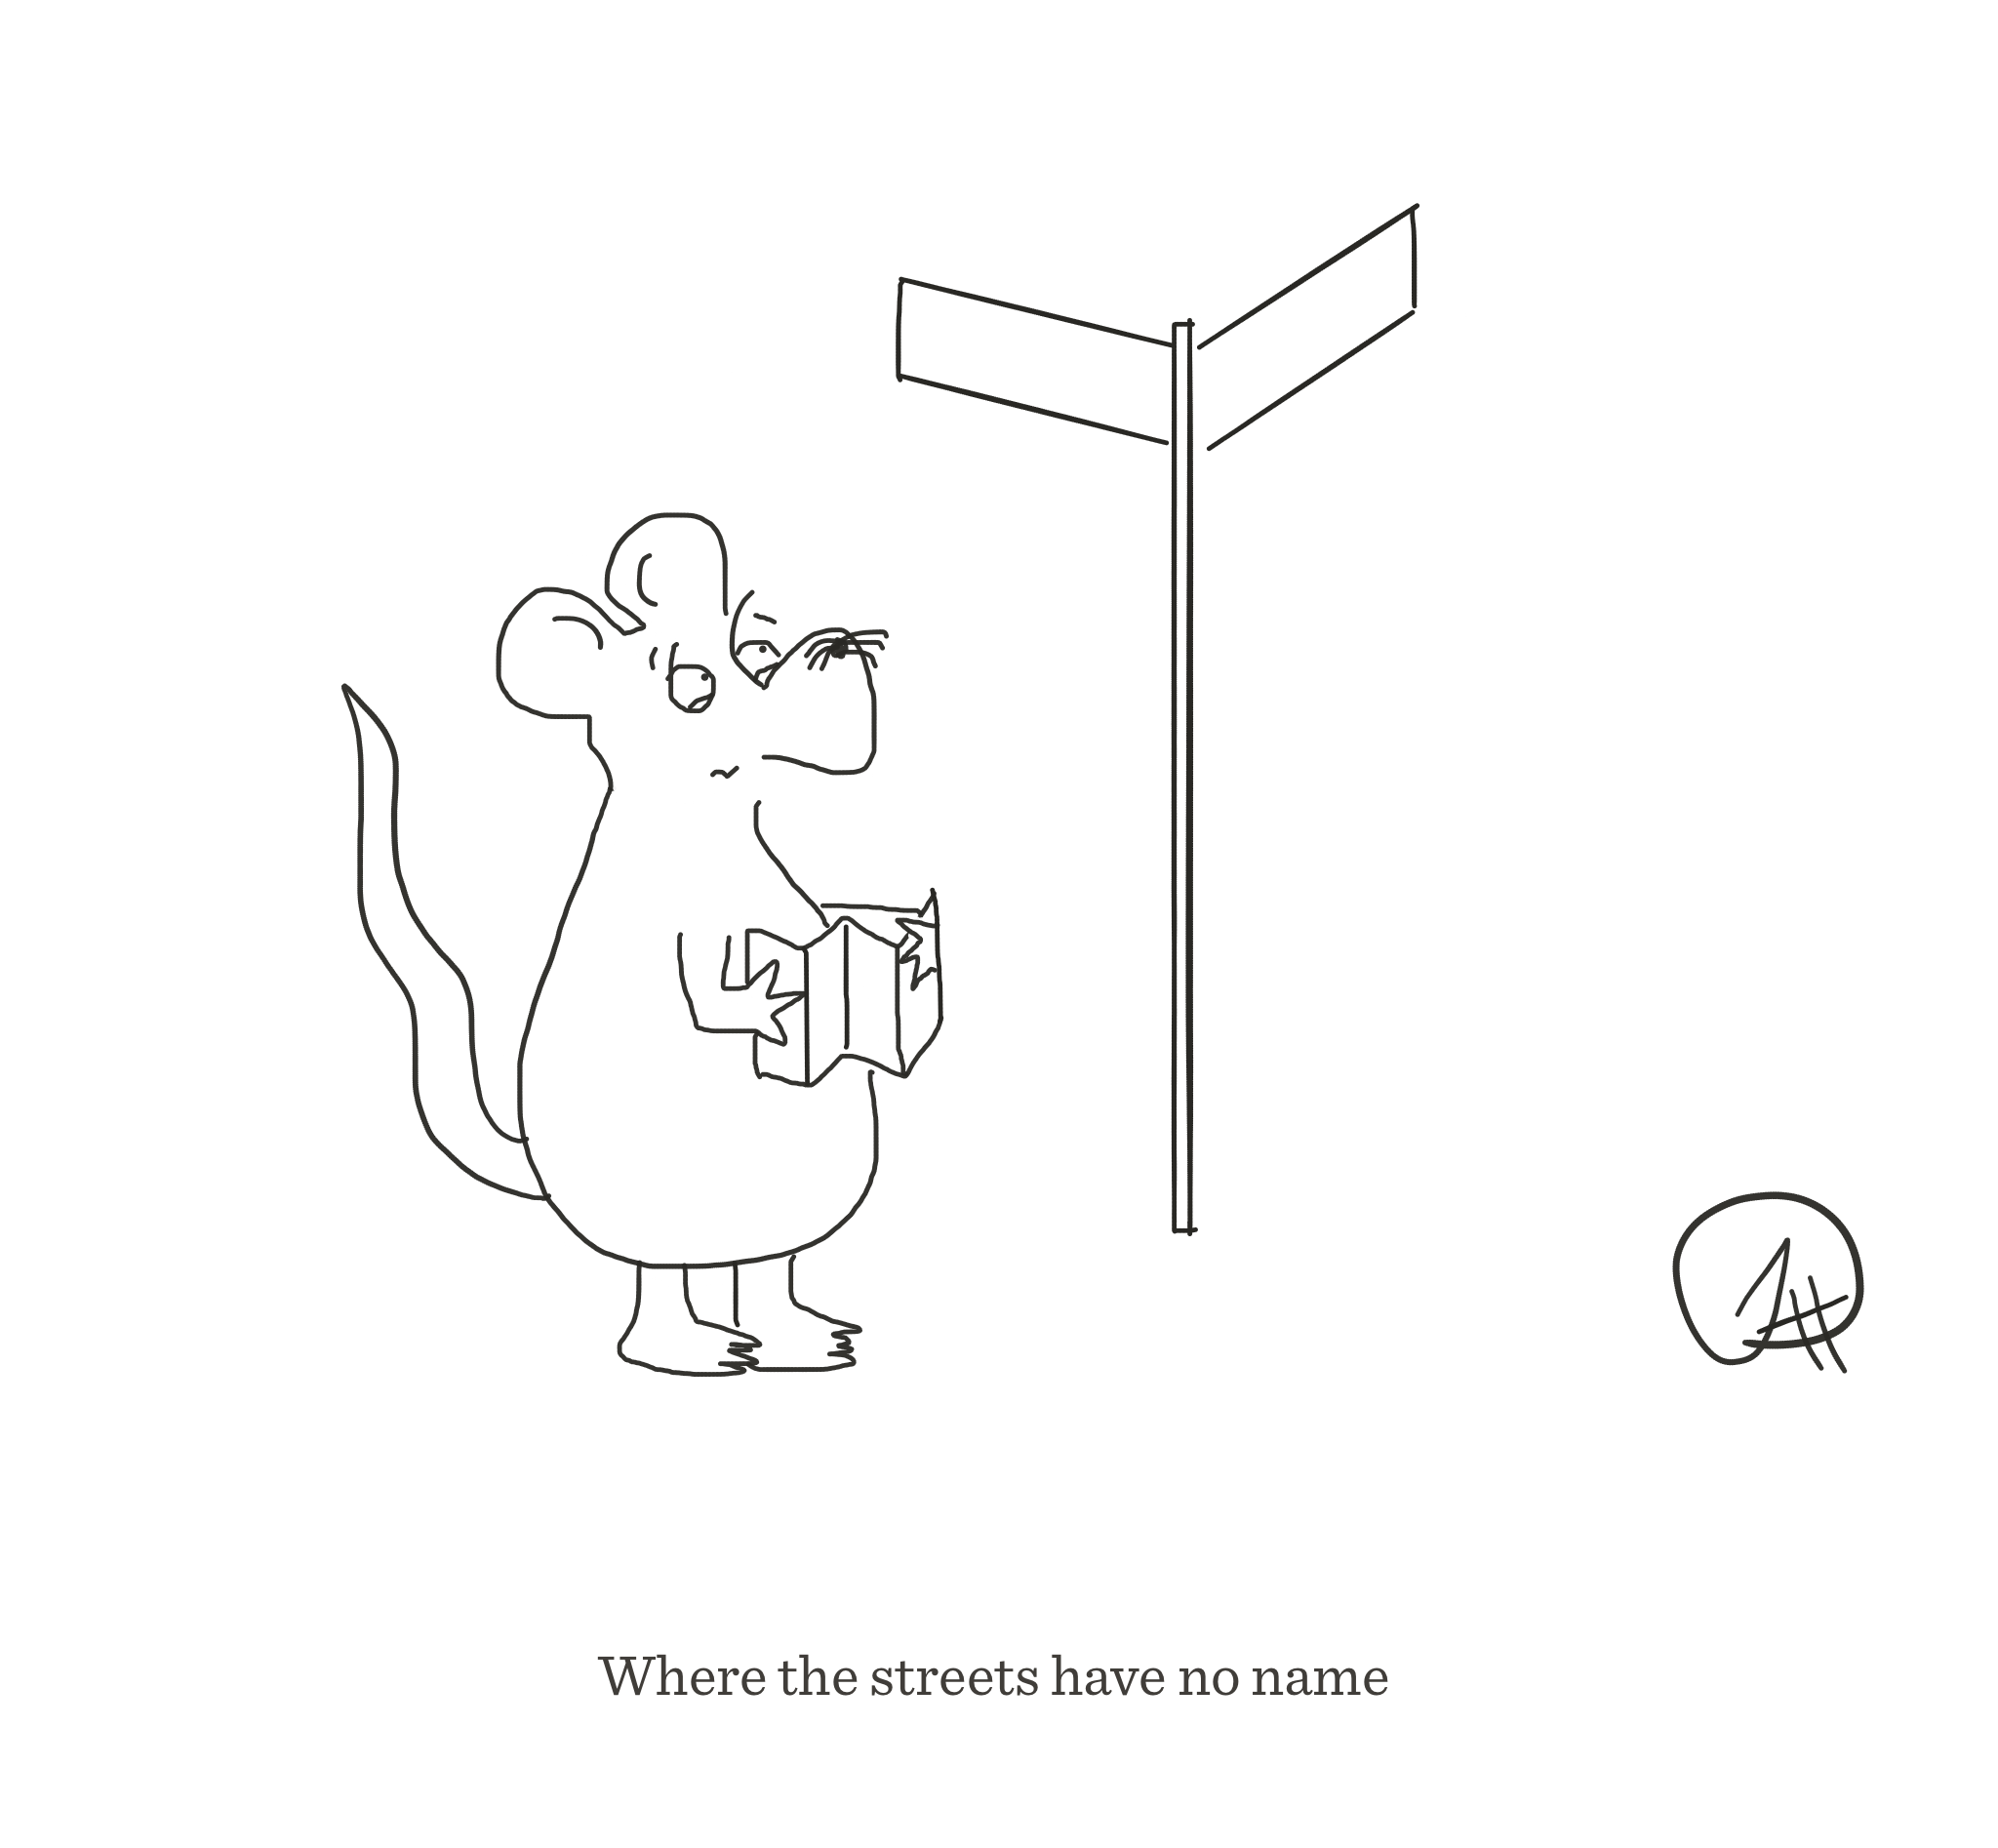 Where the streets have no name, The Happy Rat cartoon